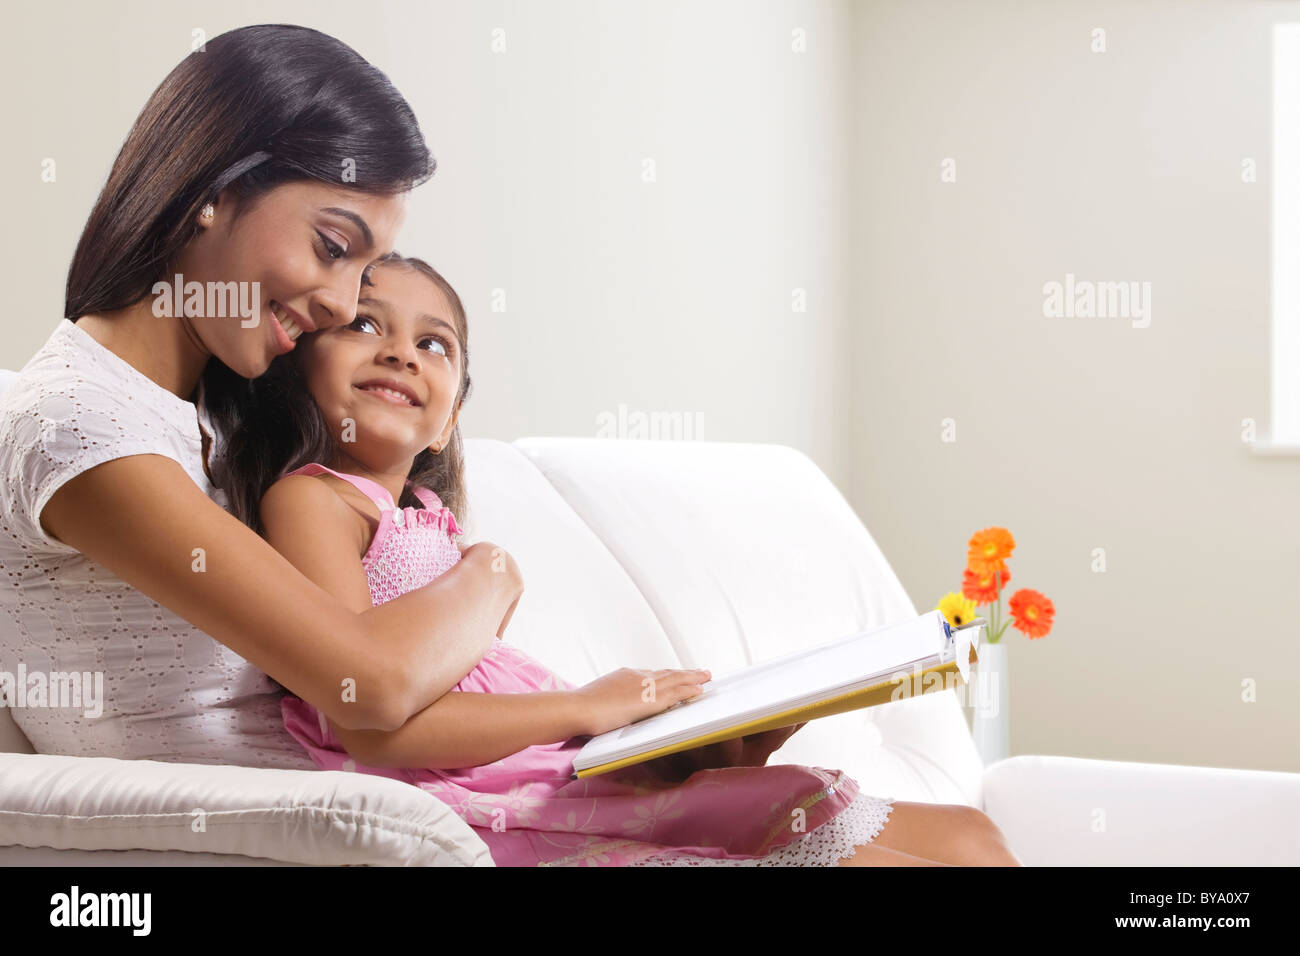 Mother and daughter with a story book - Stock Image